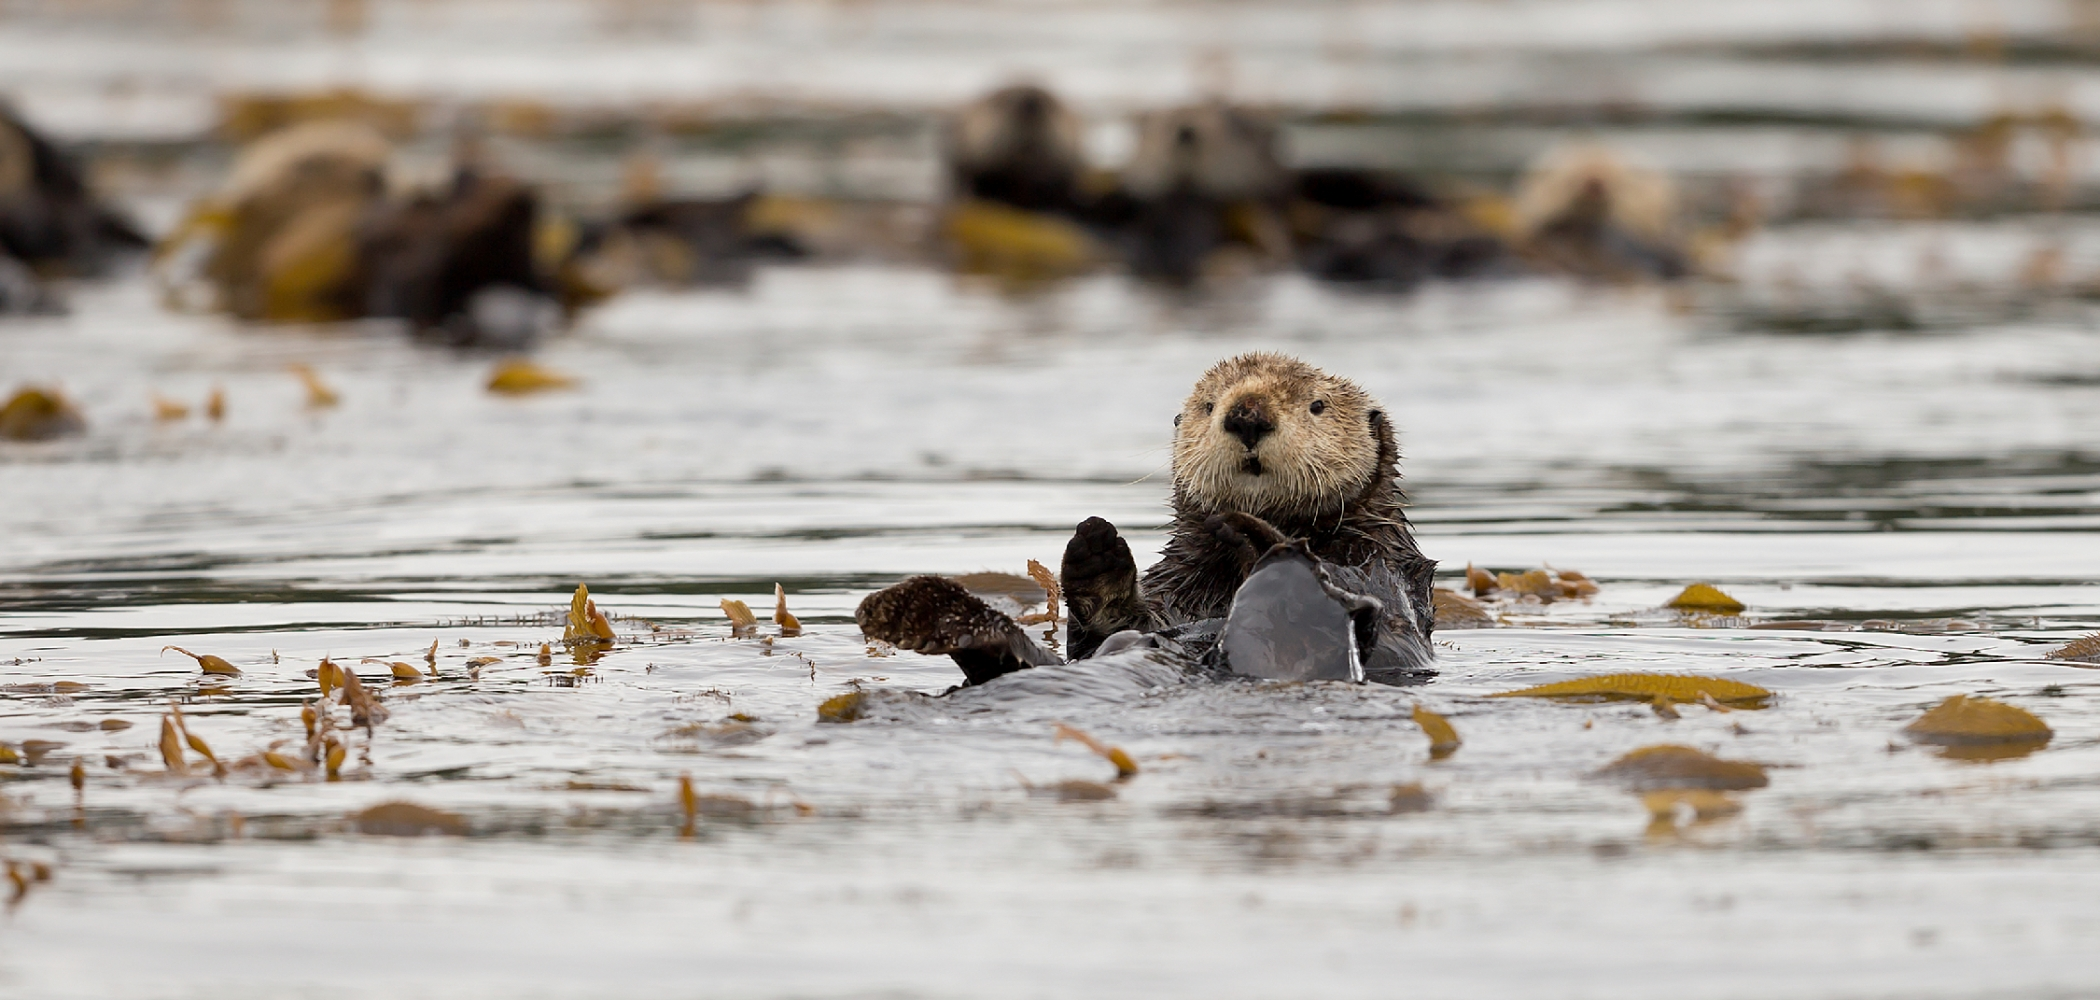 Sea Otter near Spring Island by Kyuquot Sound